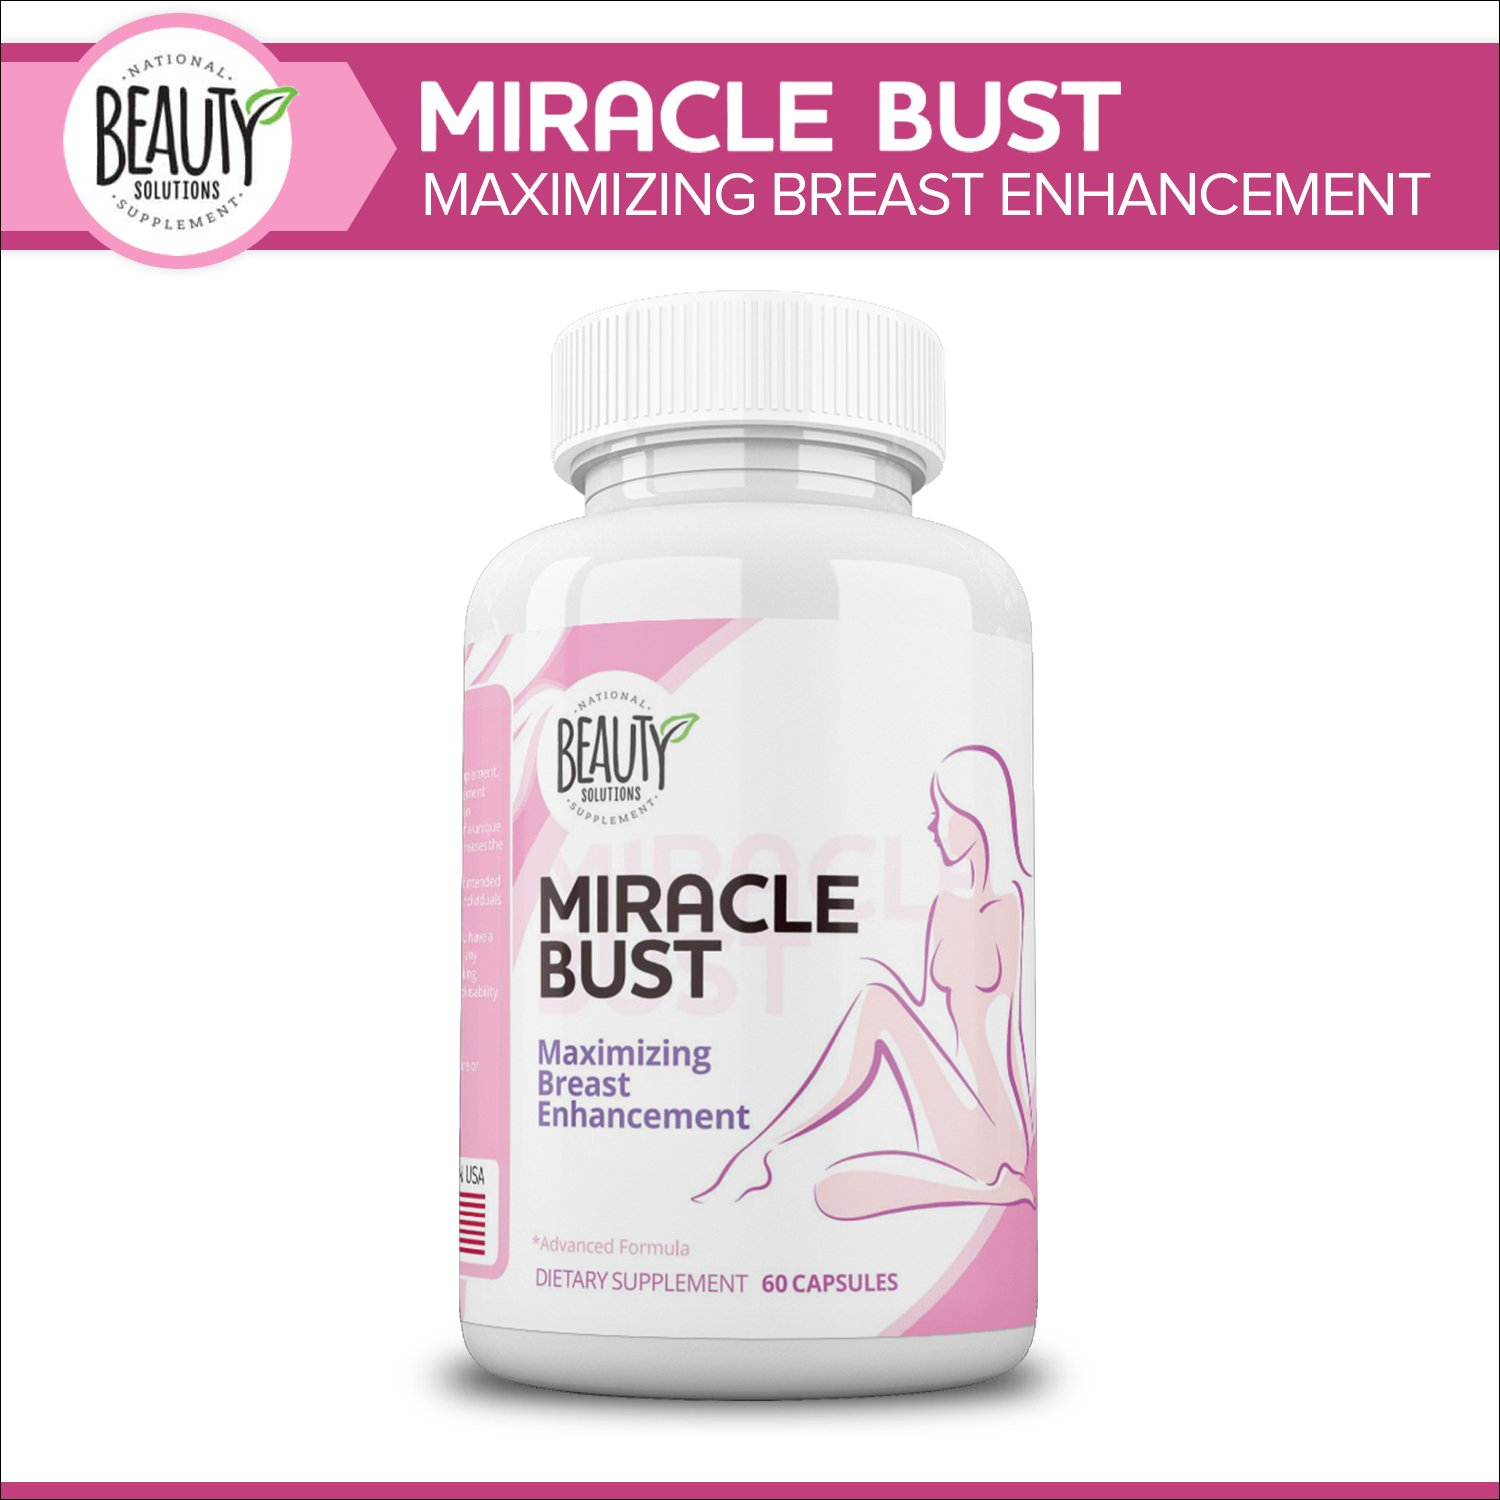 National Beauty Solutions- Miracle Bust- Safe and Effective Breast Enhancement Supplement- Augmentation Alternative- Enhance Appearance and Size of Breasts Naturally and Effectively